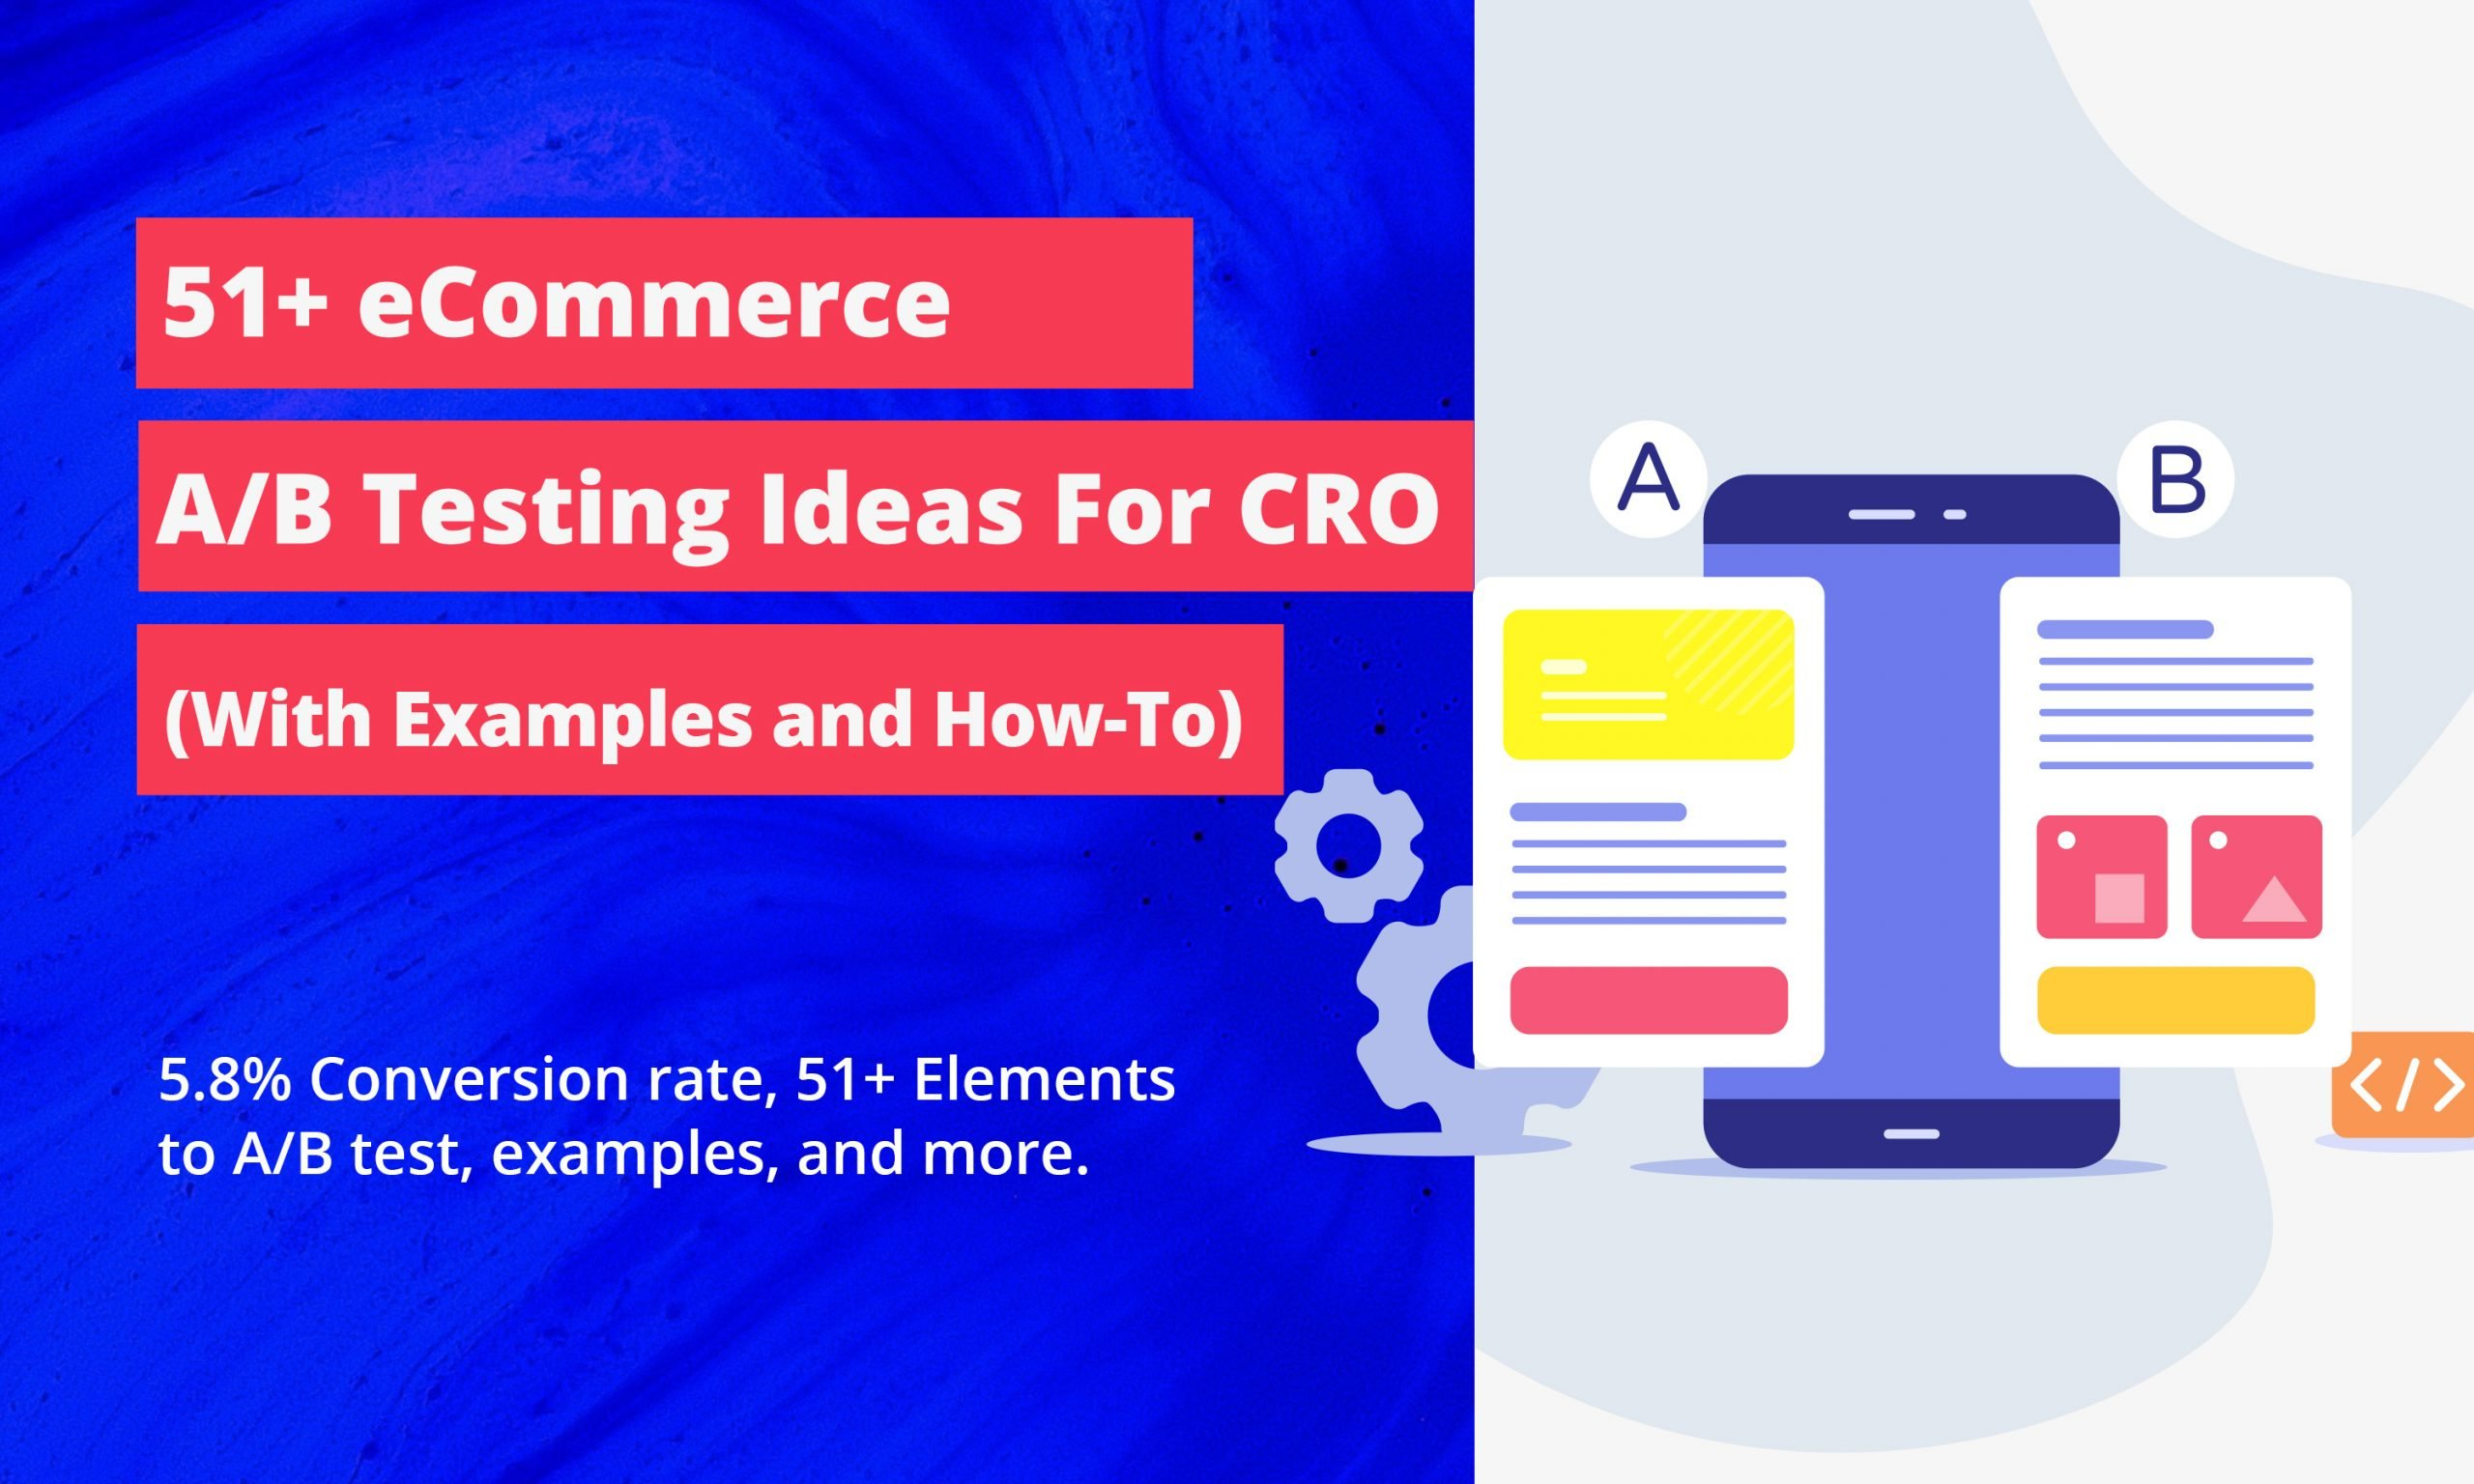 51+ eCommerce A/B Testing Ideas For CRO (With Examples and How-To)